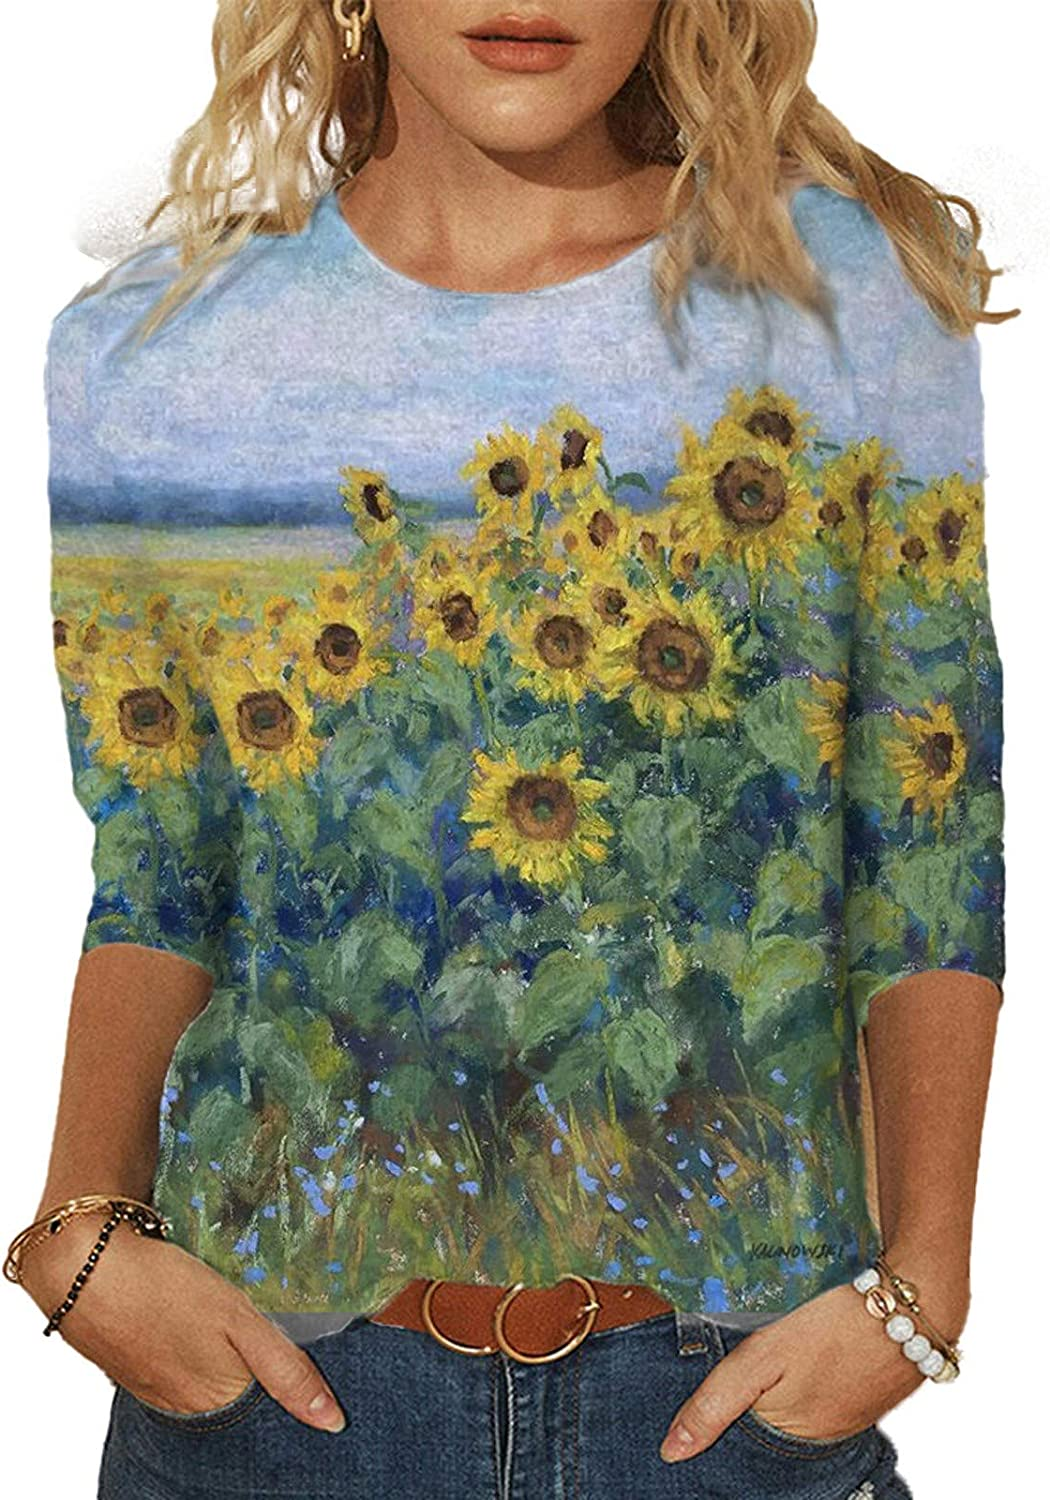 Eduavar Summer Tops for Women 3/4 Sleeve T Shirts Round Neck Loose Pullover Comfy Soft Blouse Summer Casual Printed Tops